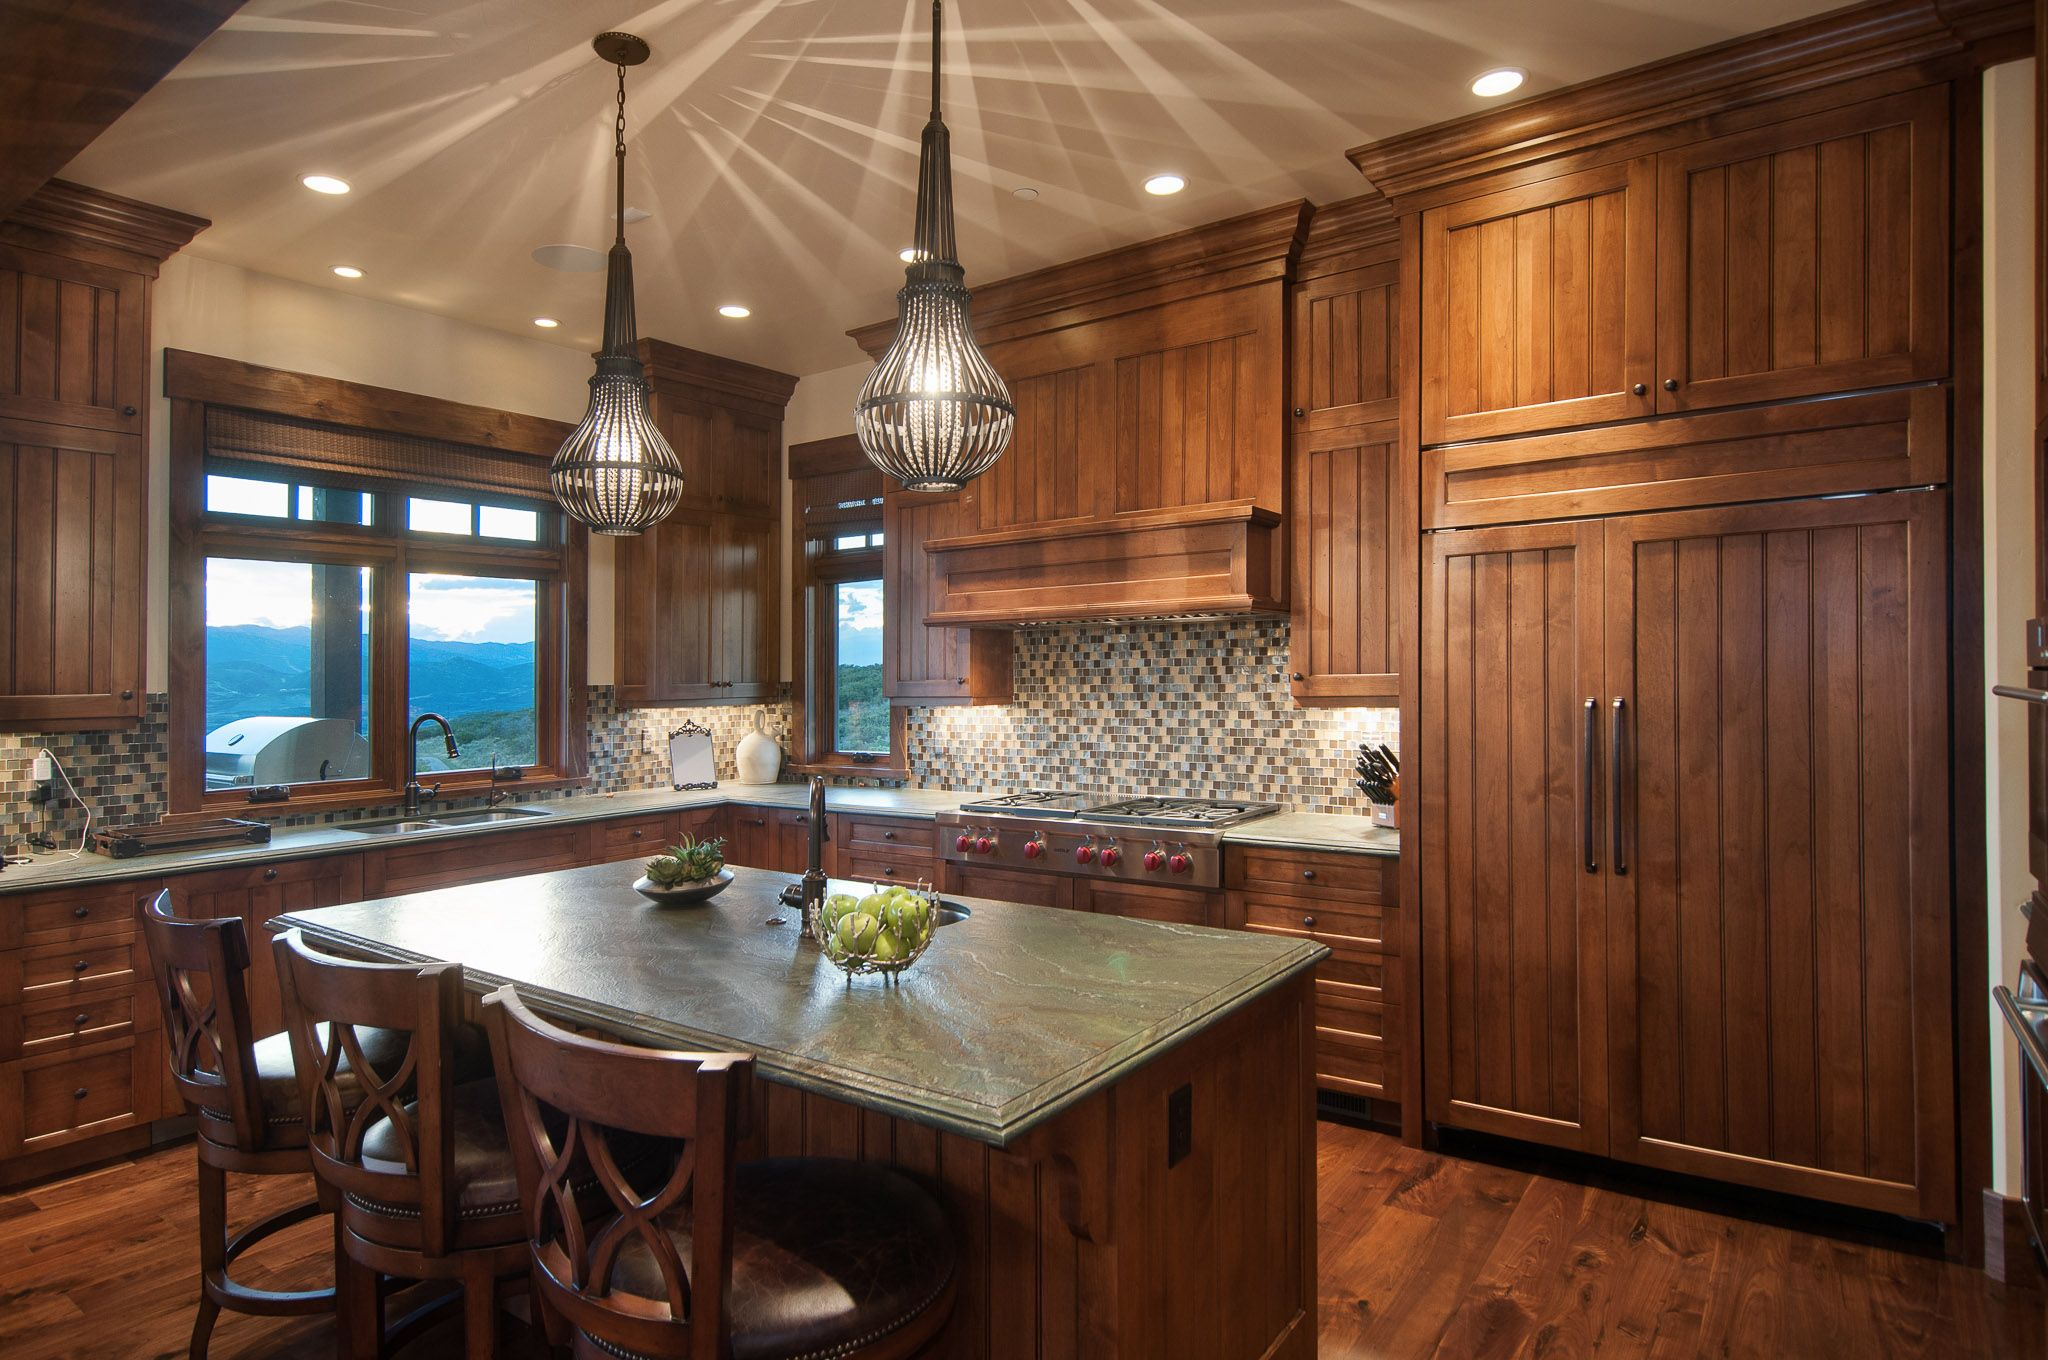 Gorgeous Kitchen By Cameo Homes Inc. In Tuhaye, Park City, Utah. Cabinetry  · Soapstone CountertopsSub ...